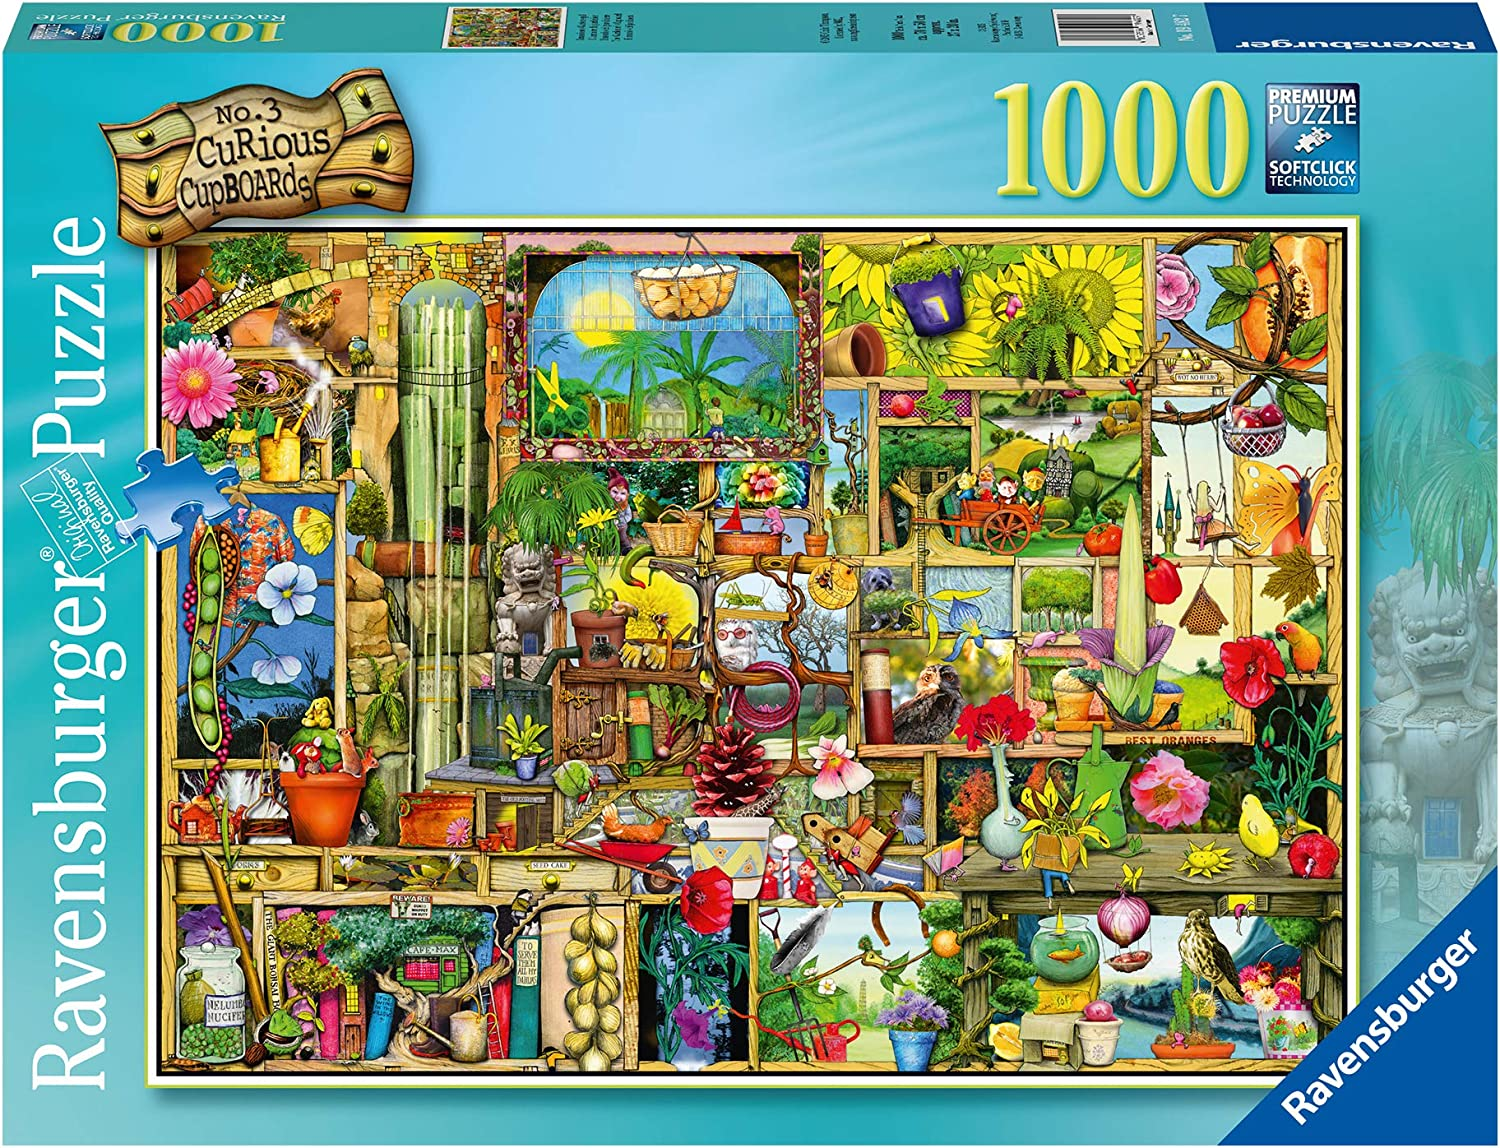 Ravensburger The Gardener's Cupboard 1000 Piece Jigsaw Puzzle for Adults – Every piece is unique, Softclick technology Means Pieces Fit Together Perfectly